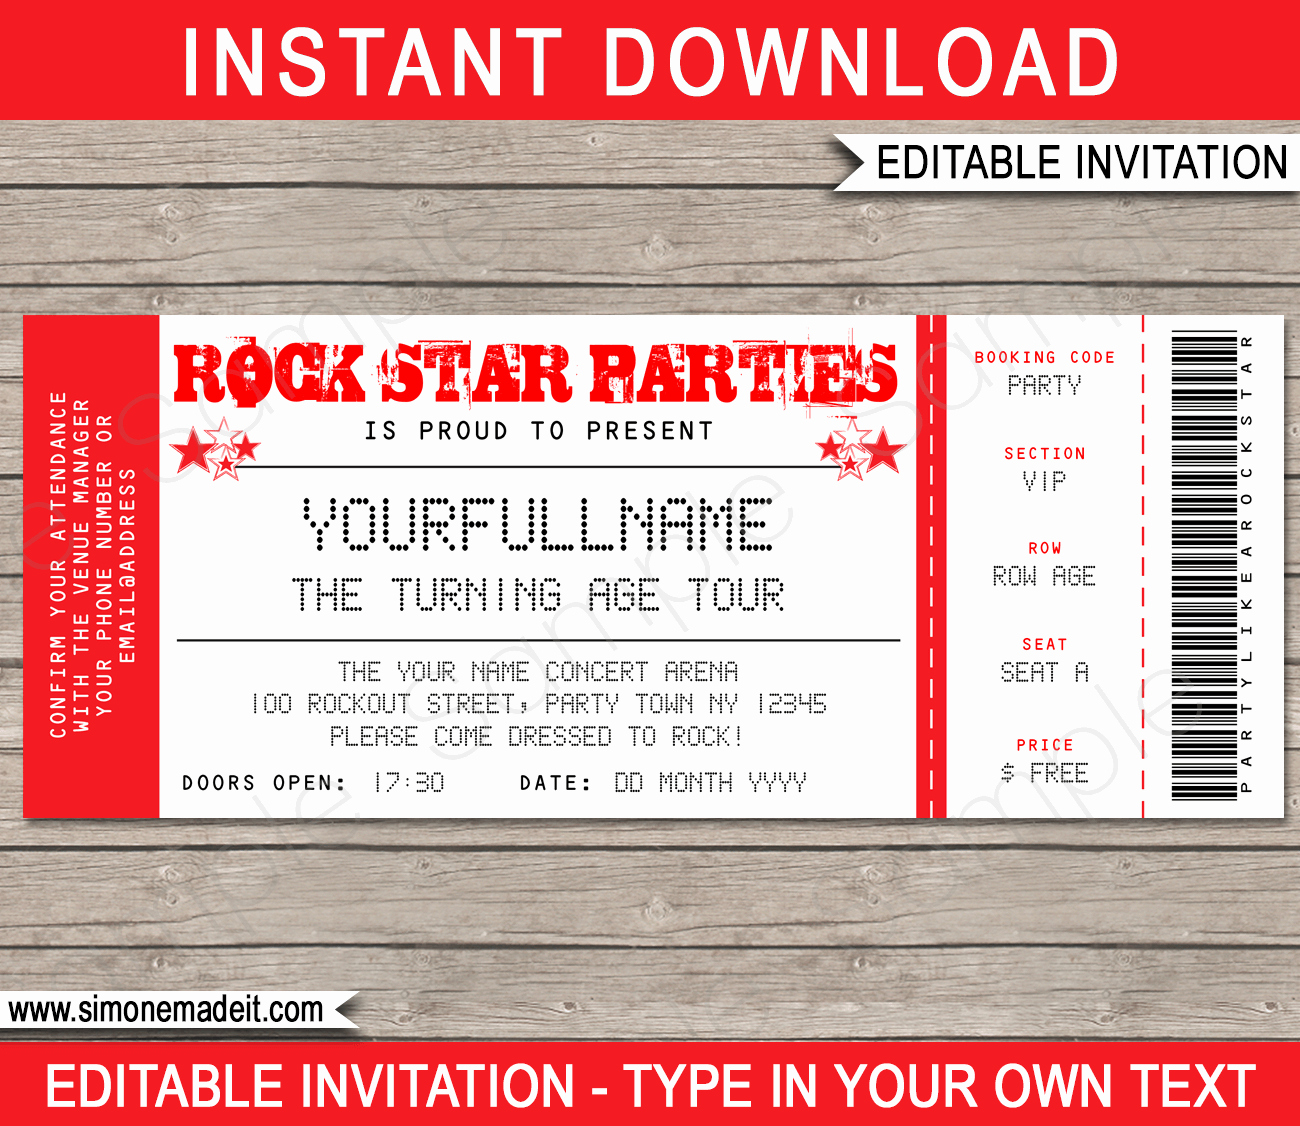 Concert Ticket Invitation Templates Awesome Rock Star Party Ticket Invitation